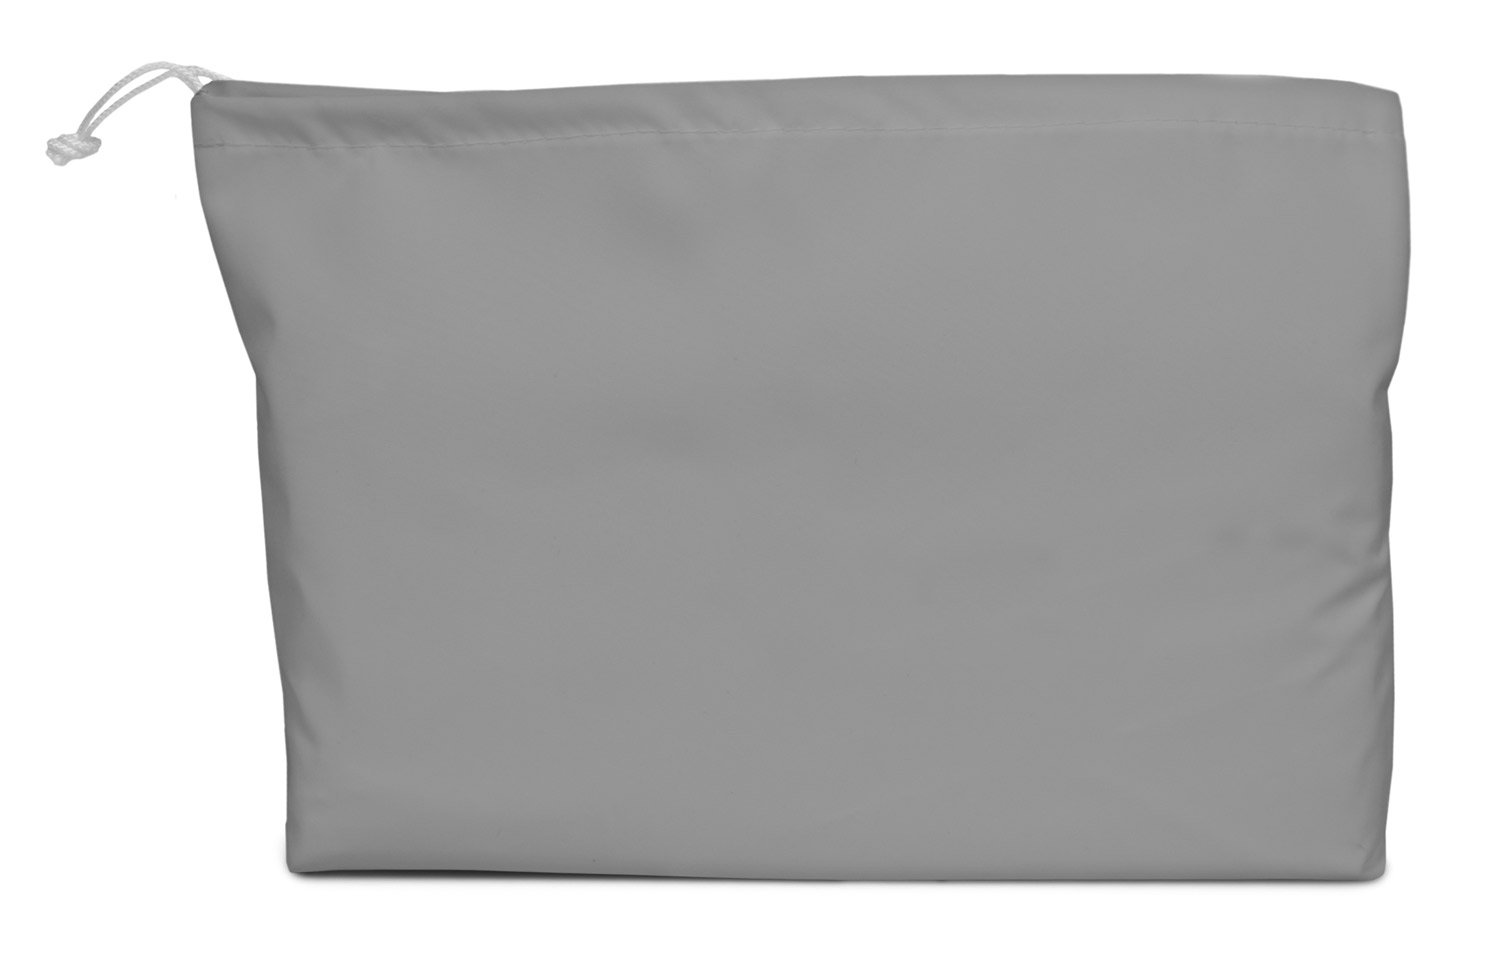 KoverRoos Weathermax 89147 Loveseat/Sofa Cover, 51-Inch Width by 33-Inch Diameter by 33-Inch Height, Charcoal by KOVERROOS (Image #2)